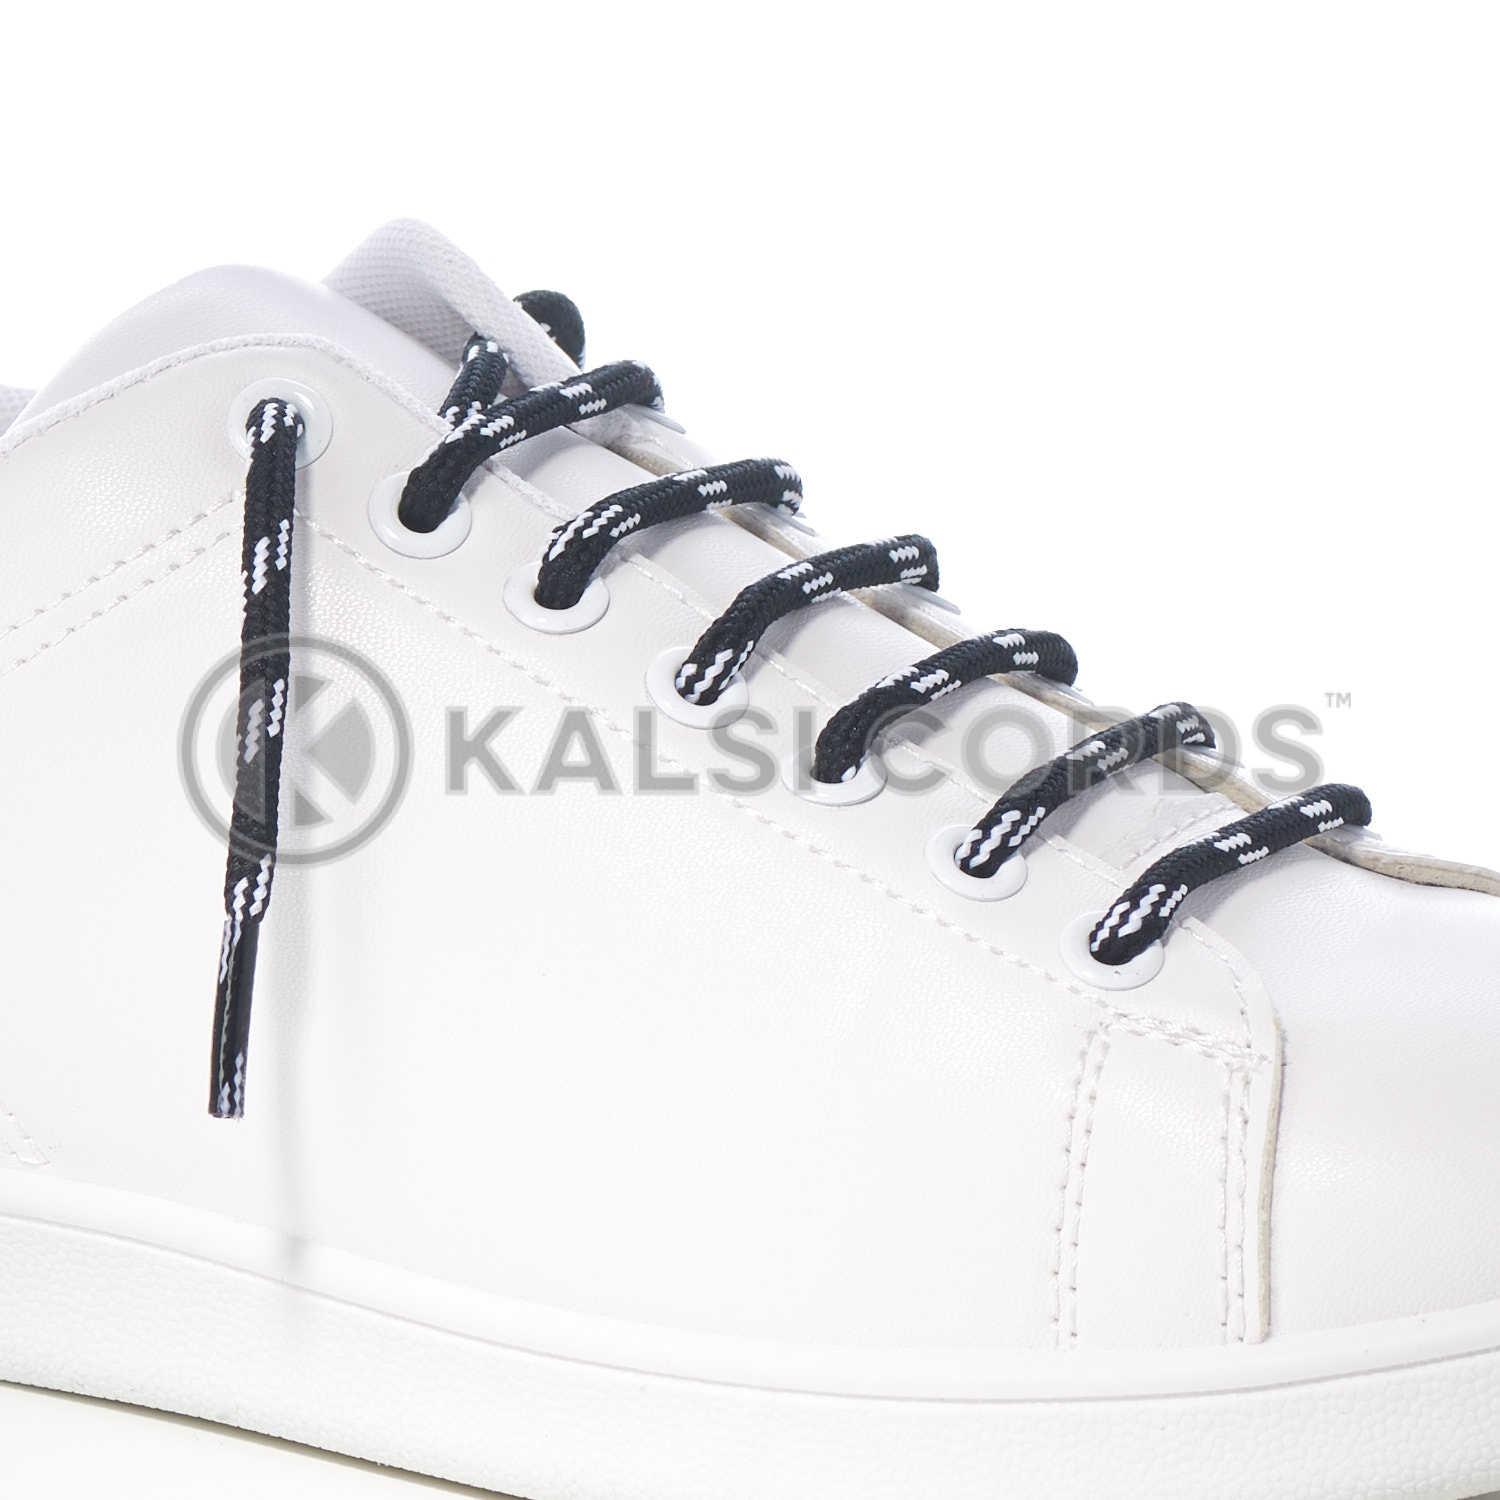 T621 5mm Round Cord Shoe Lace Black White 4 Fleck Kids Trainers Adults Hiking Walking Boots Kalsi Cords